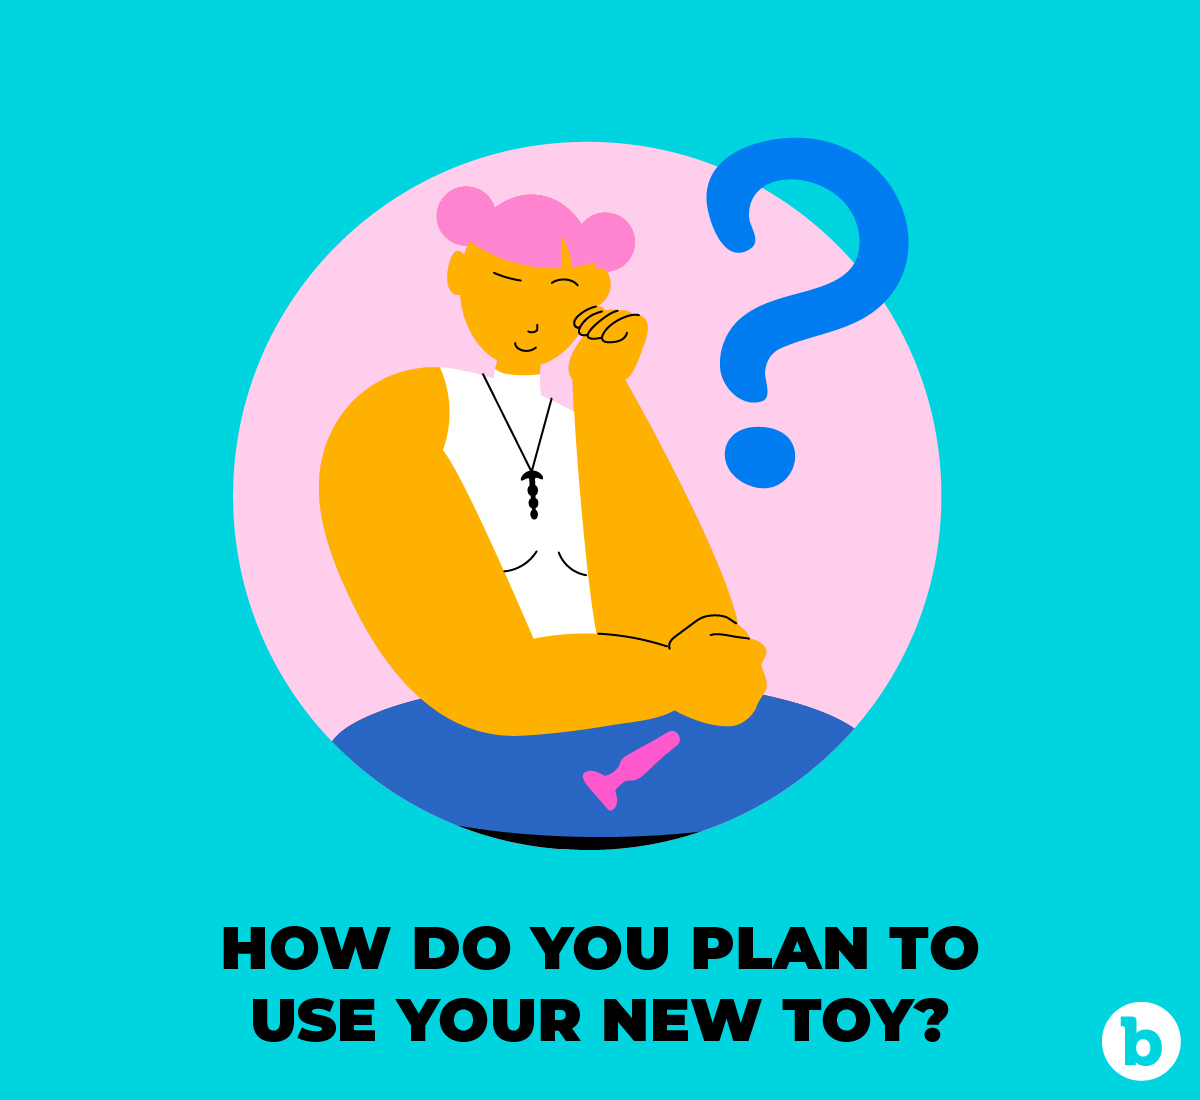 Find out how you plan to use your butt toy before purchasing it